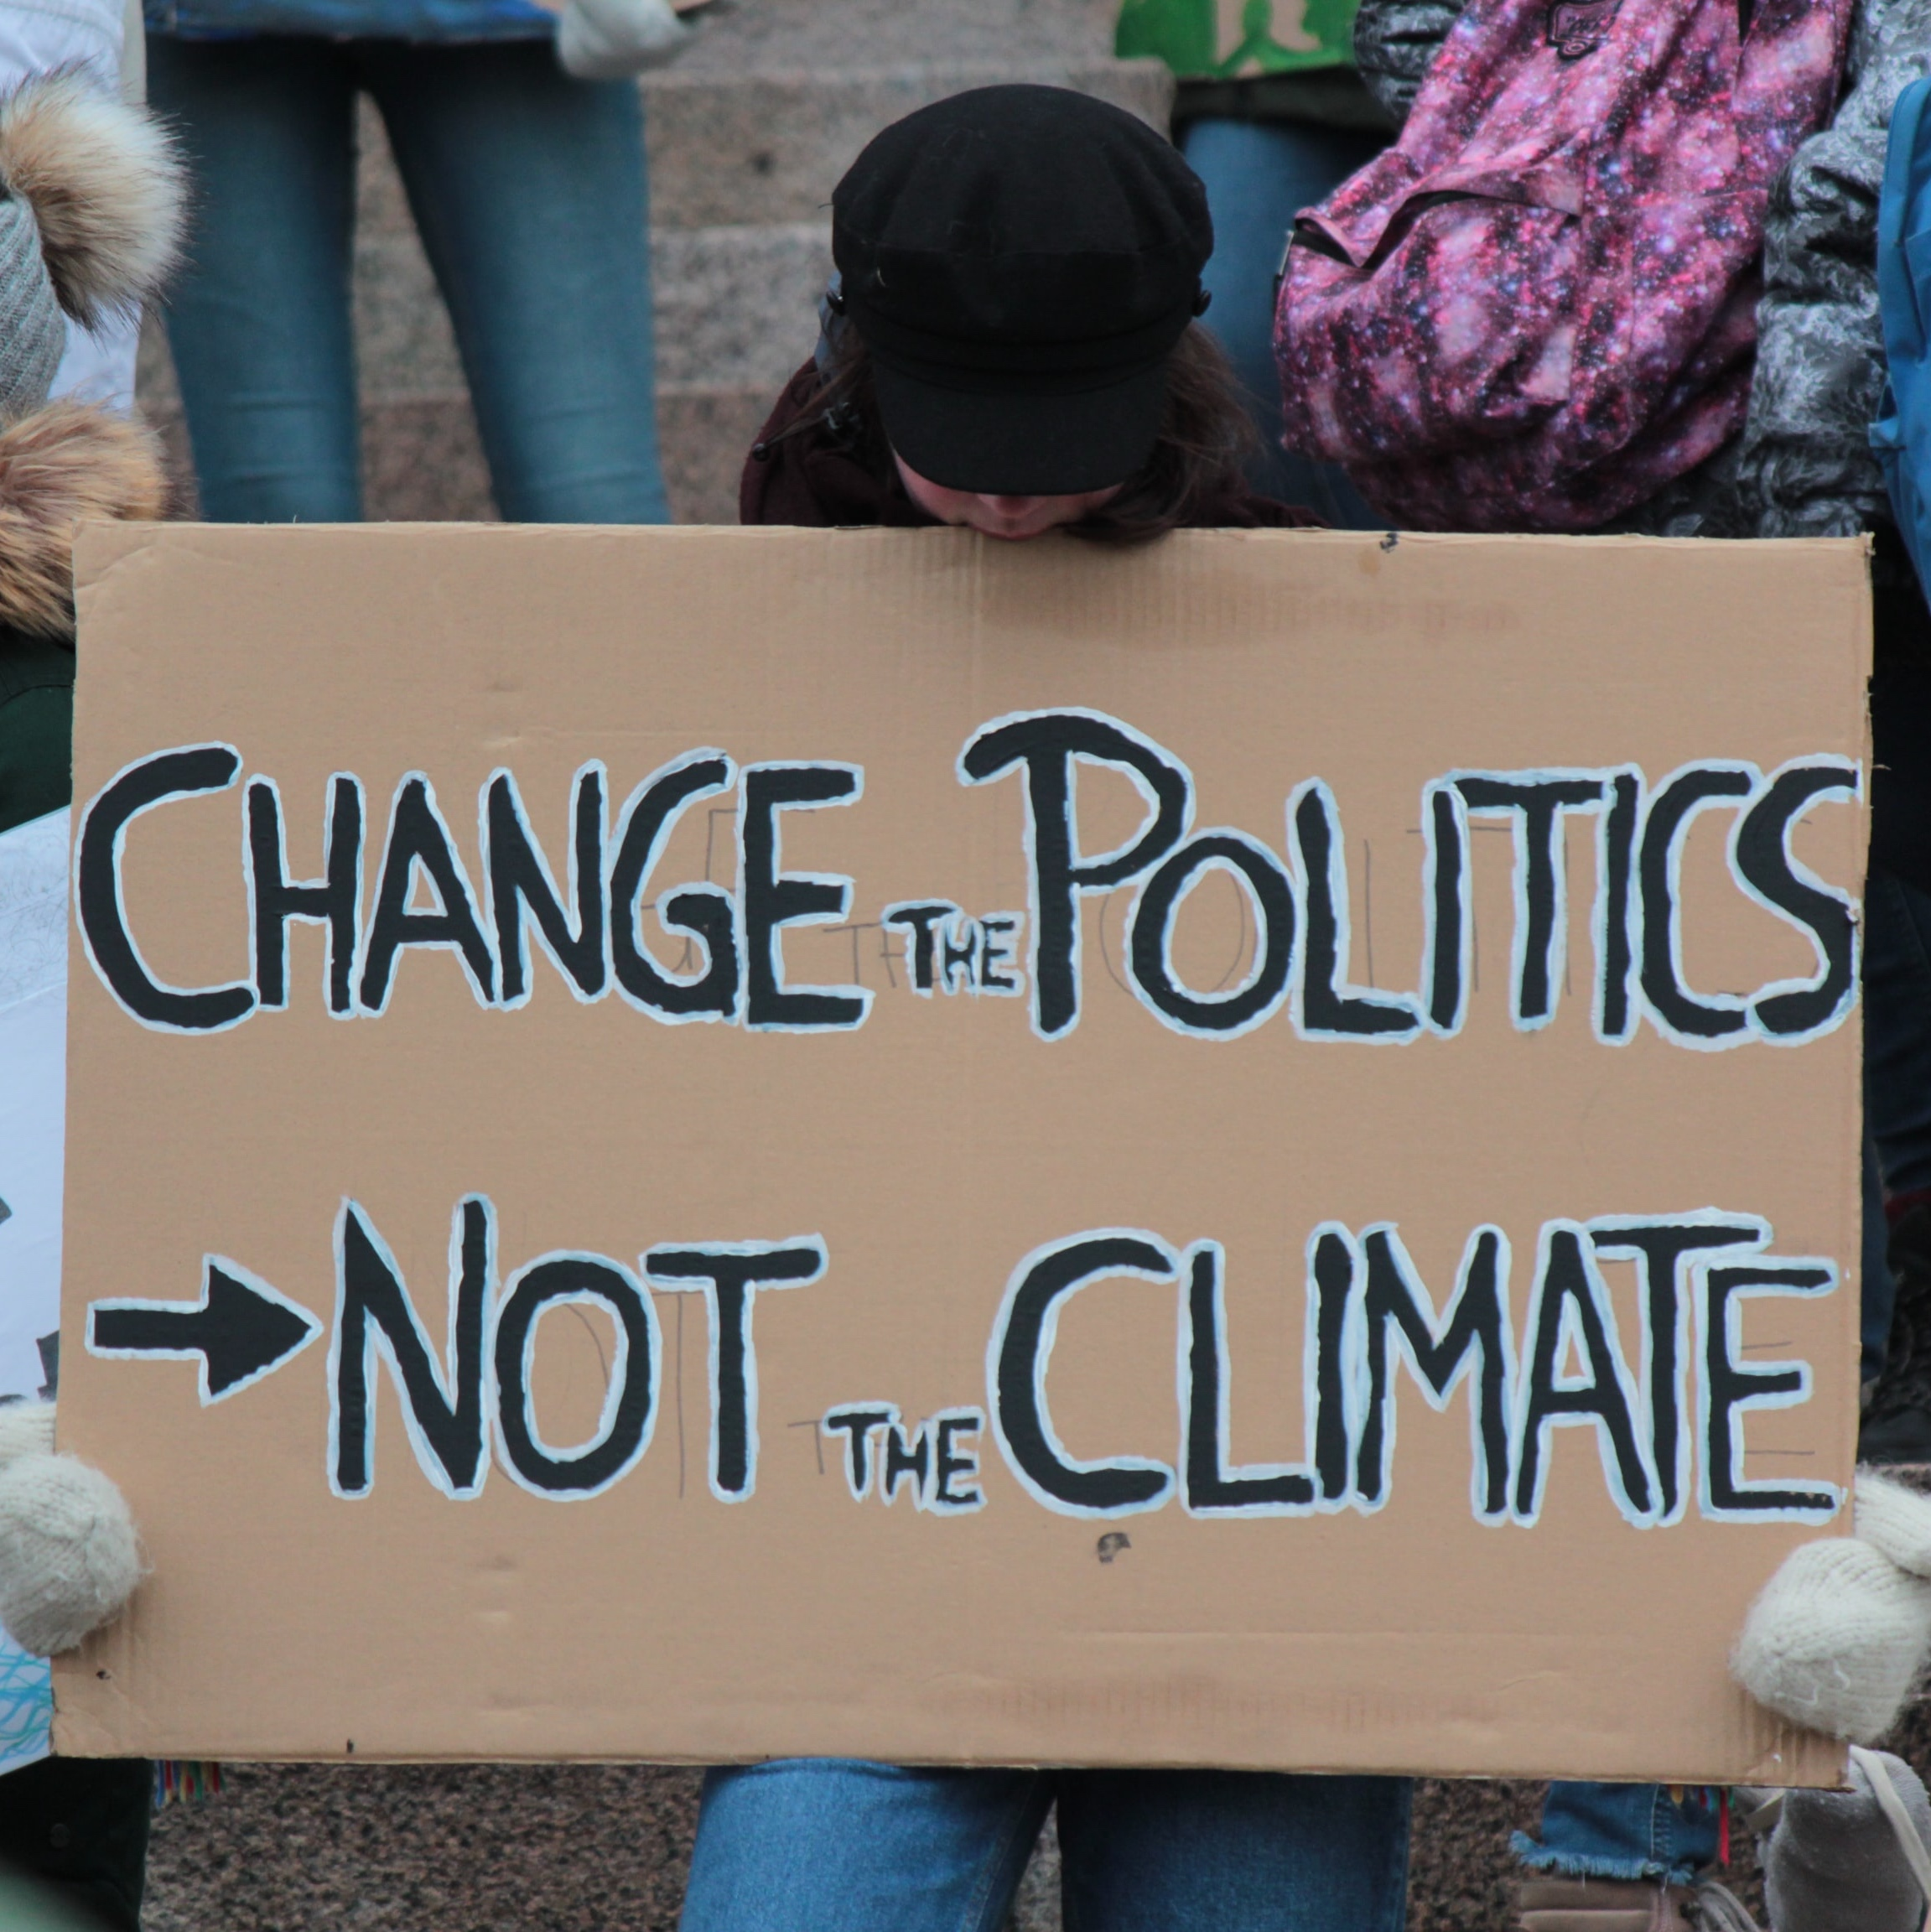 Change the politics, not the climate protest banner